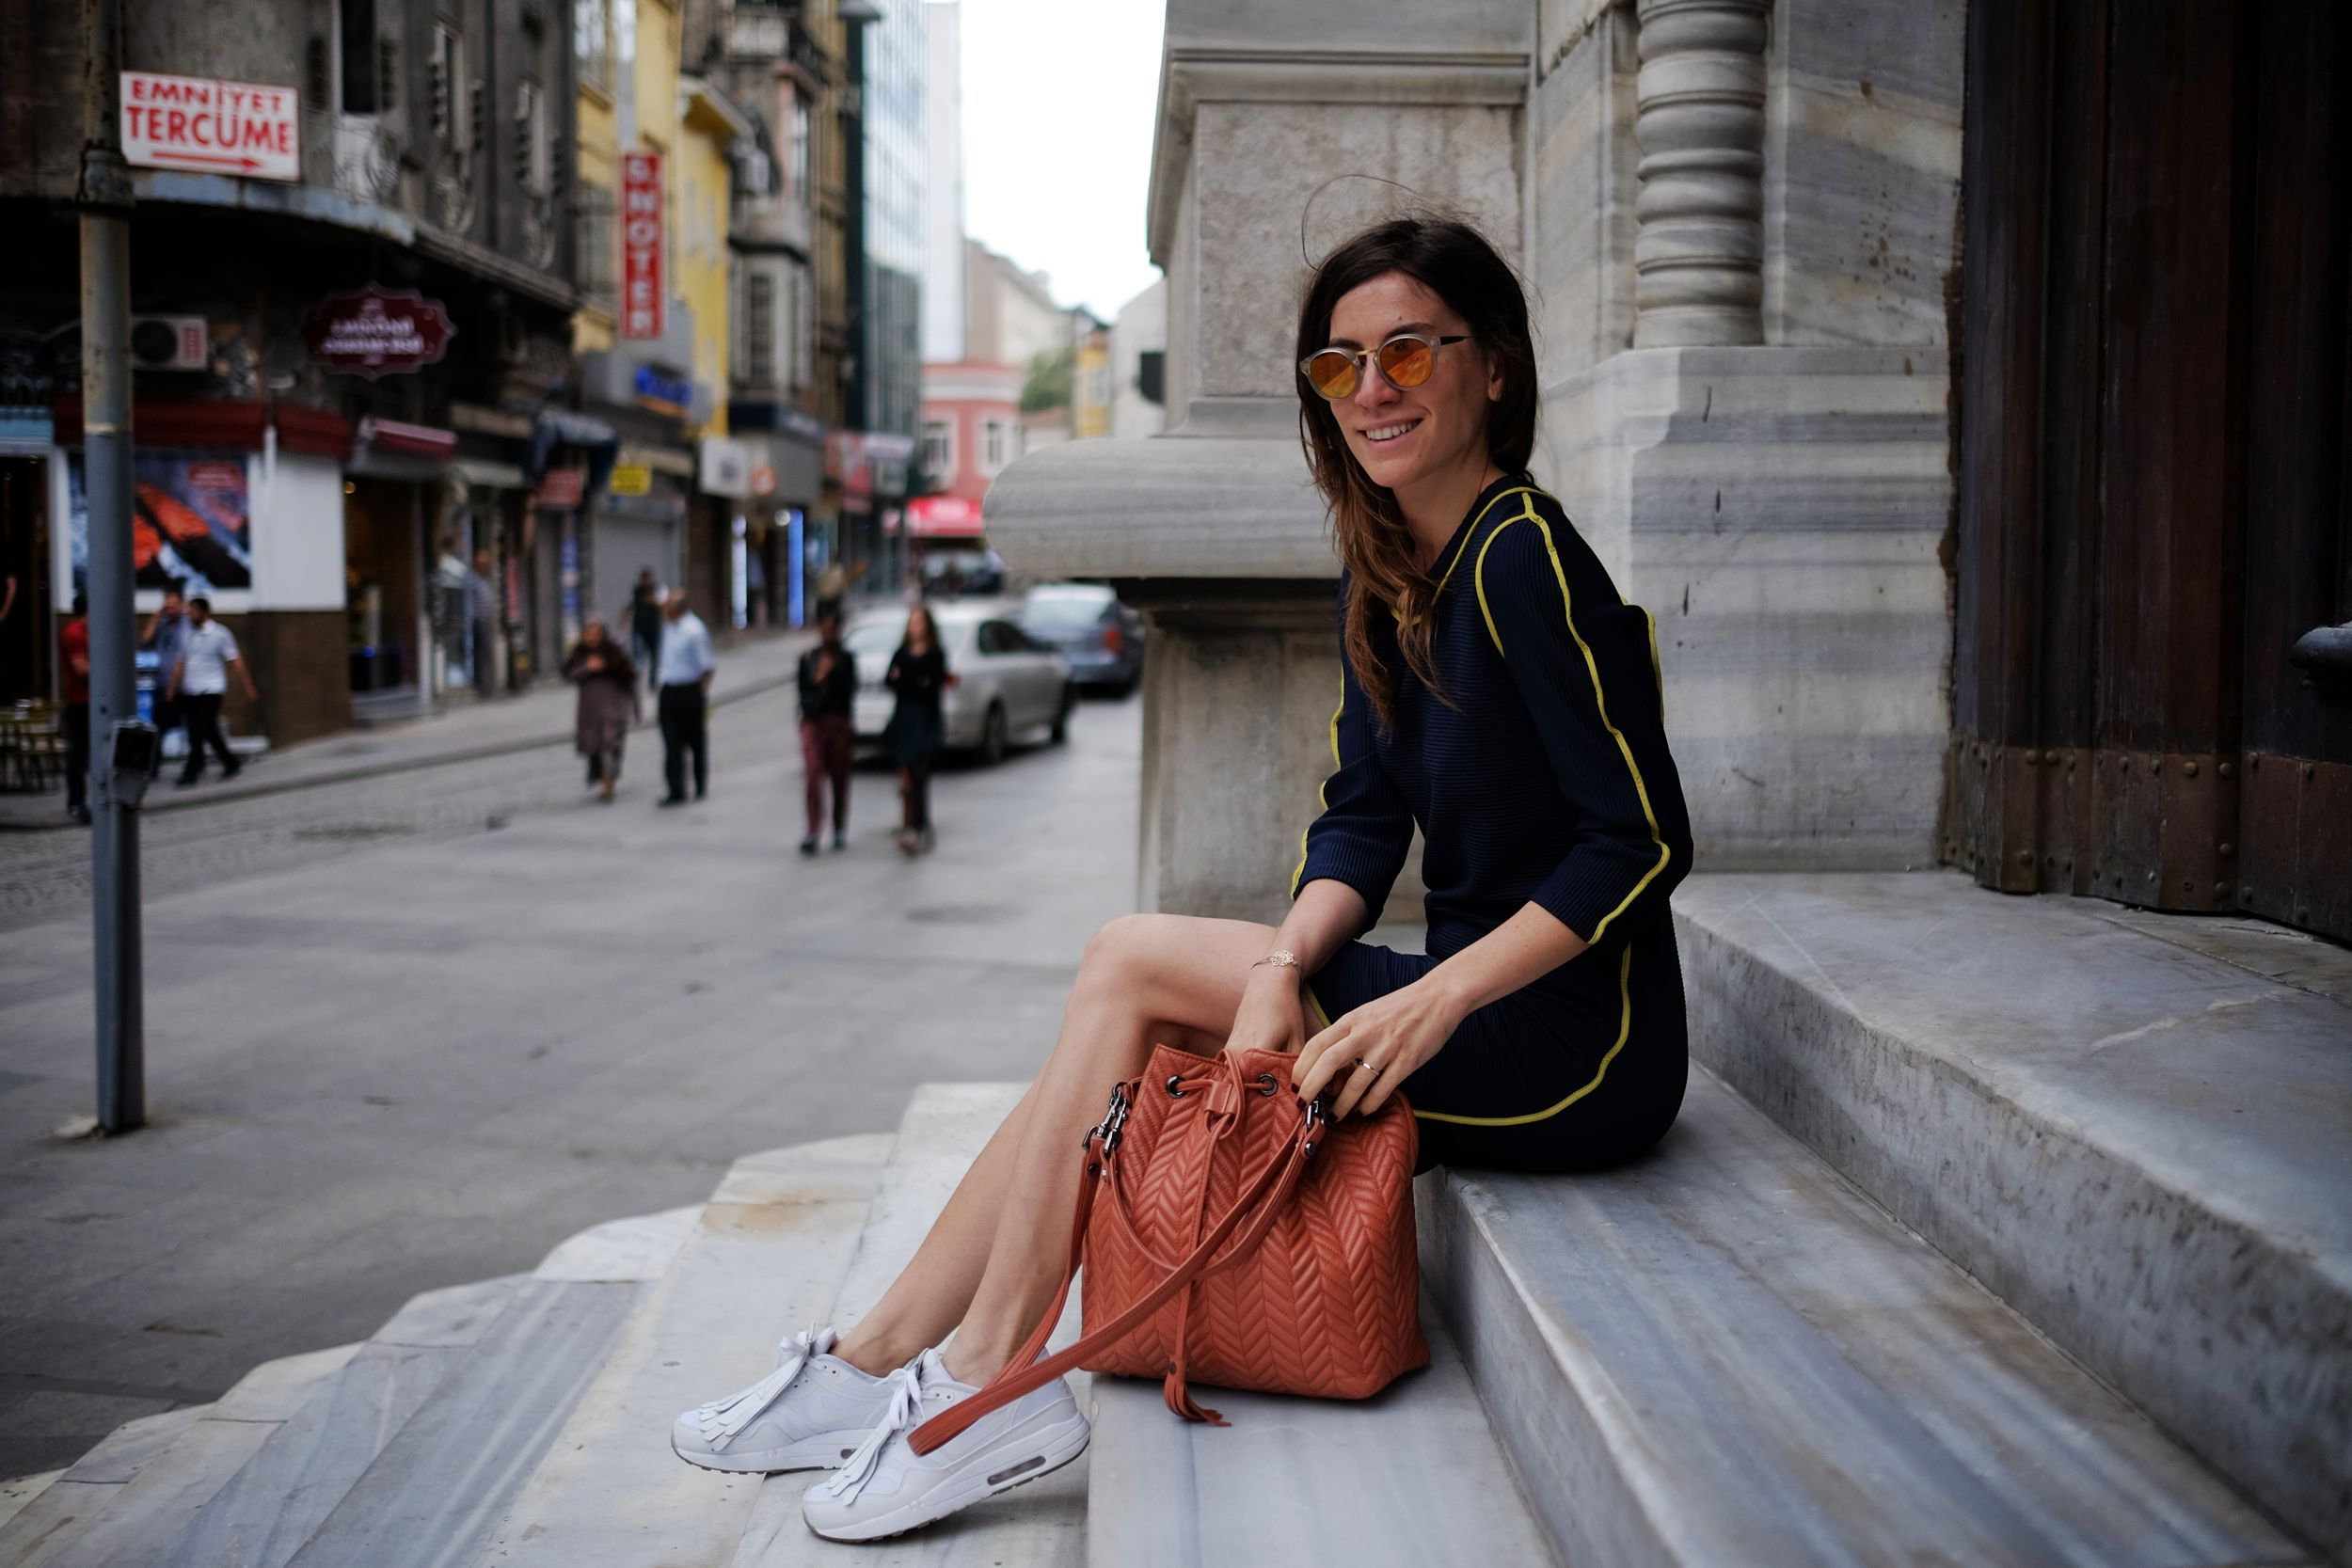 off ne giysem, billur saatci, street style, aslı filinta, maid in love, super, misela, fuji,